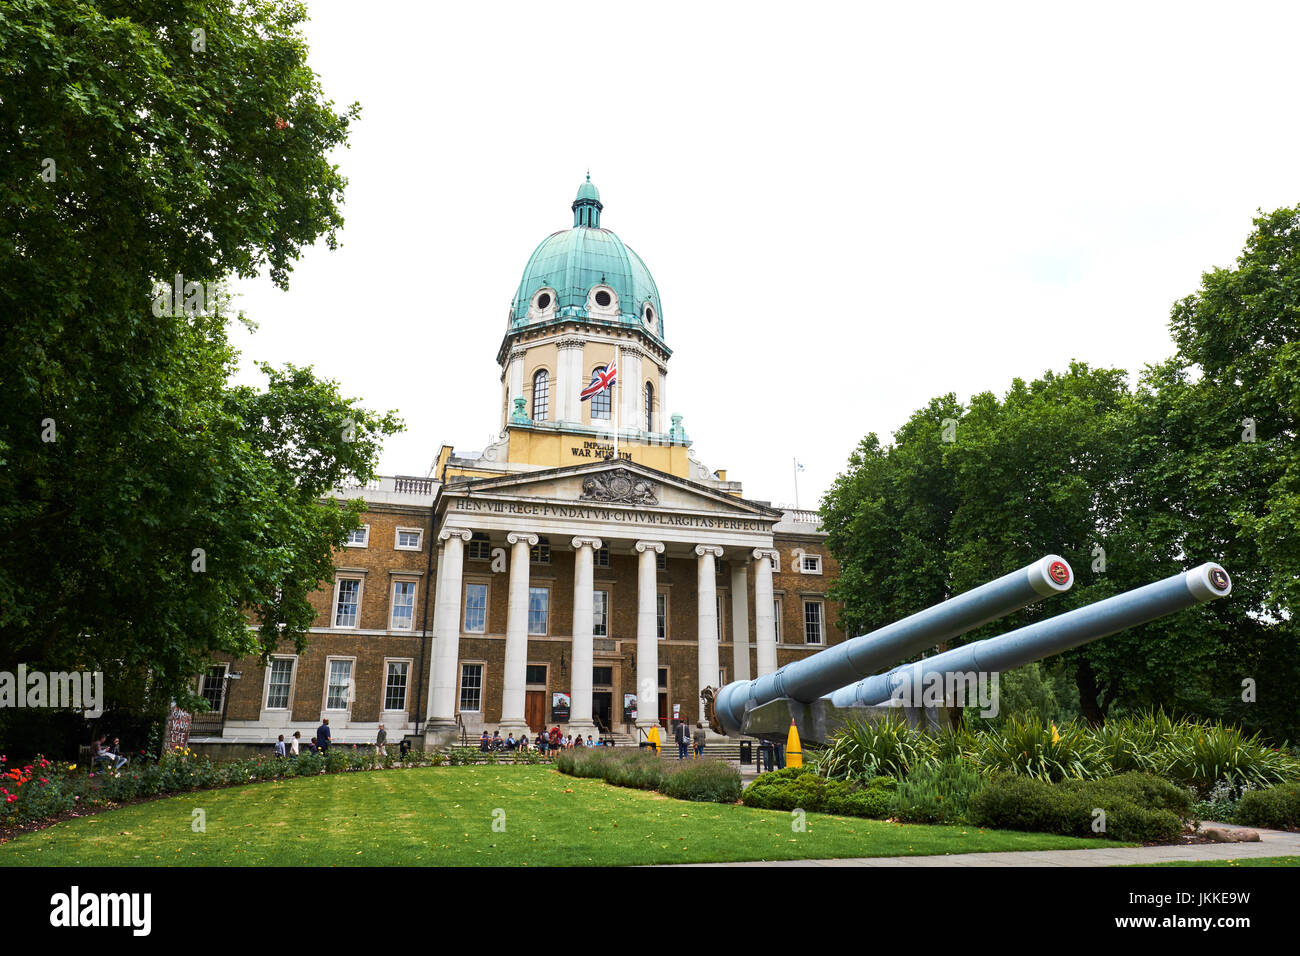 Imperial War Museum, Lambeth Road, London, UK - Stock Image